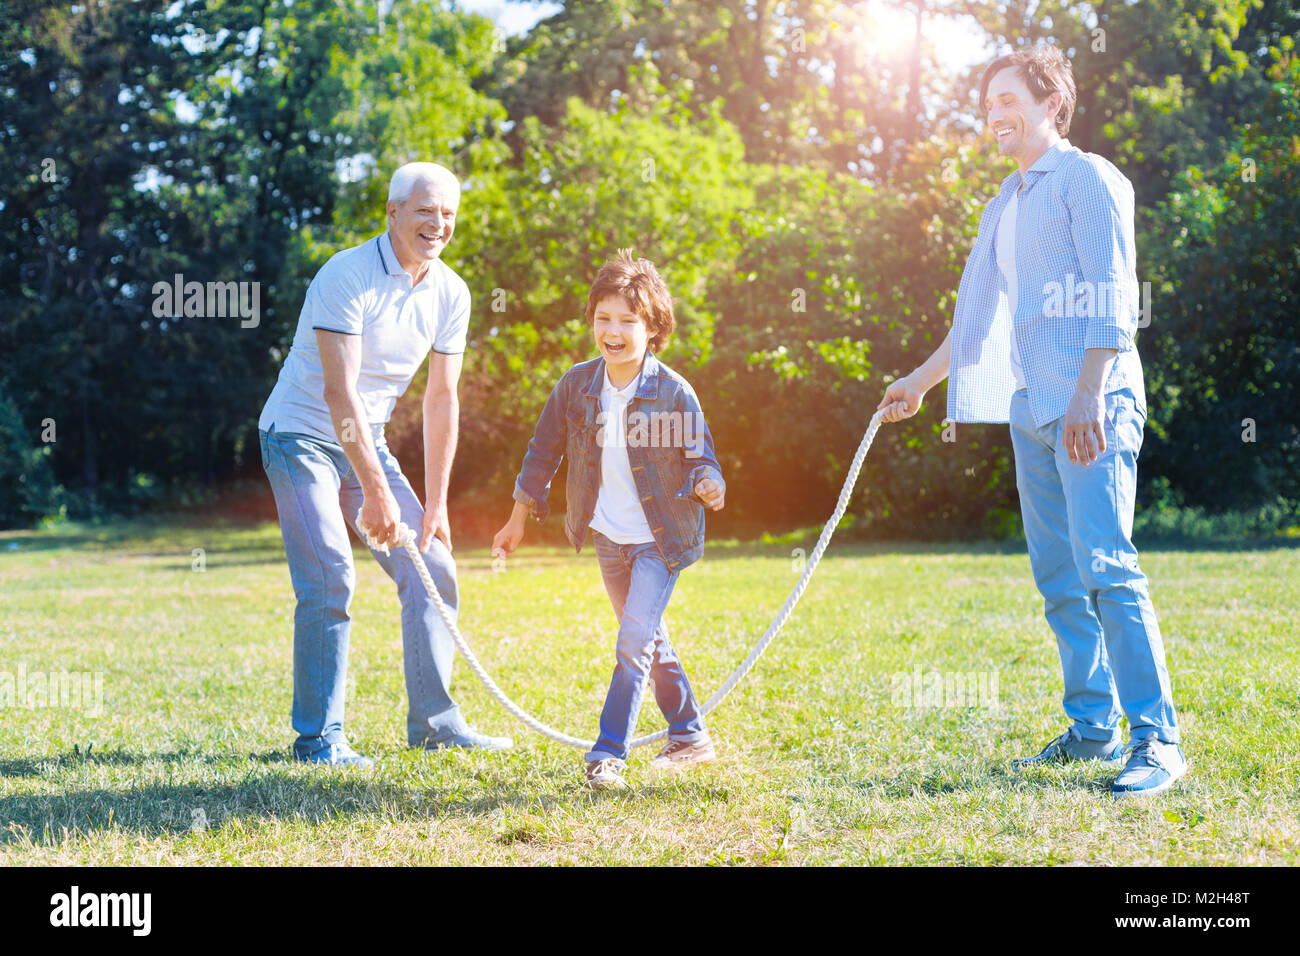 Radiant multigenerational family having fun with skip rope - Stock Image